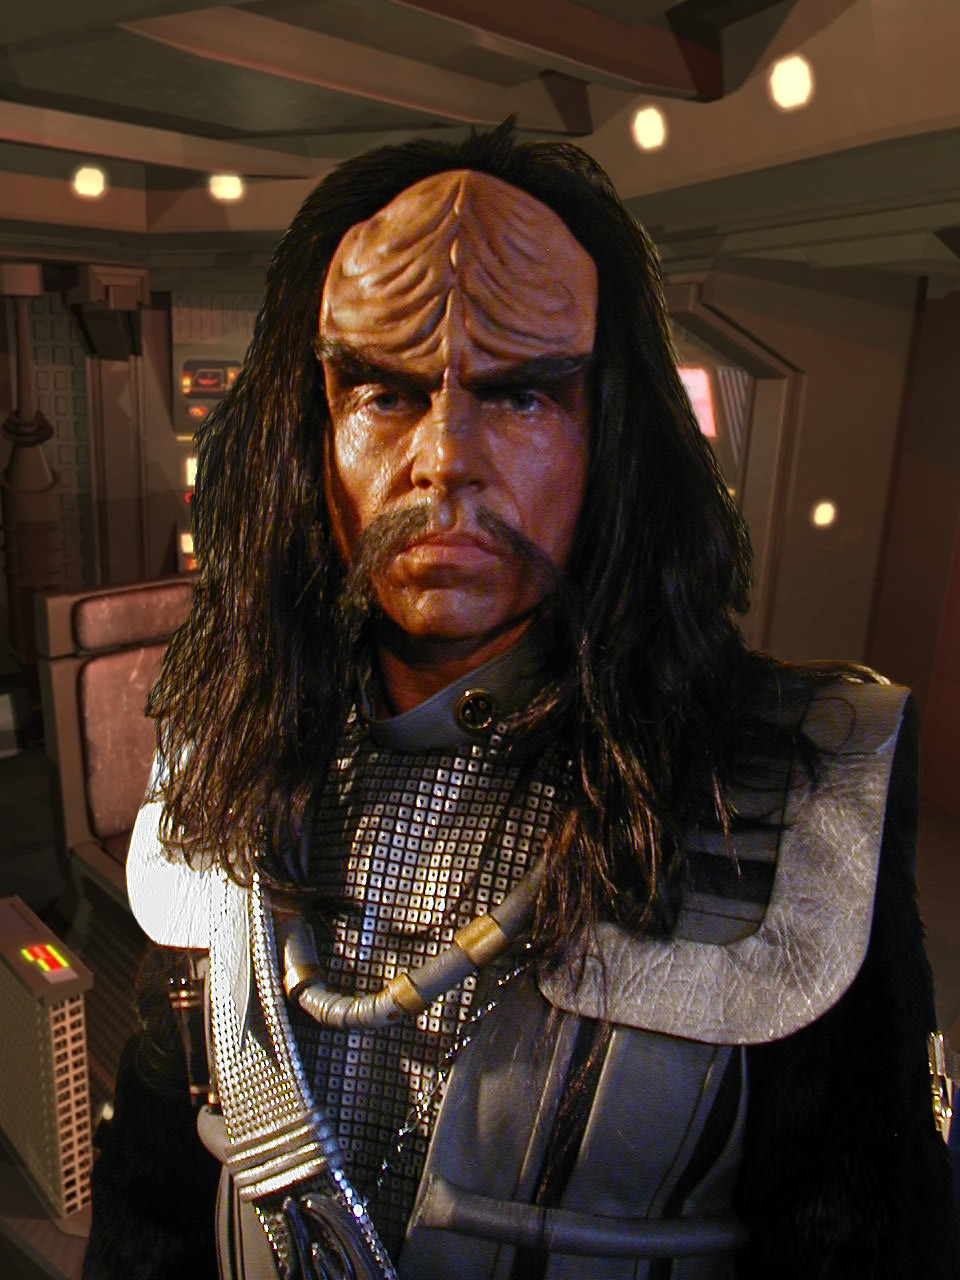 John Carrigan as Klingon, Star Trek:  Of Gods and Men - Sculpt, Prosthetic Appliance, Makeup by Tim Vittetoe, ImpaQt FX